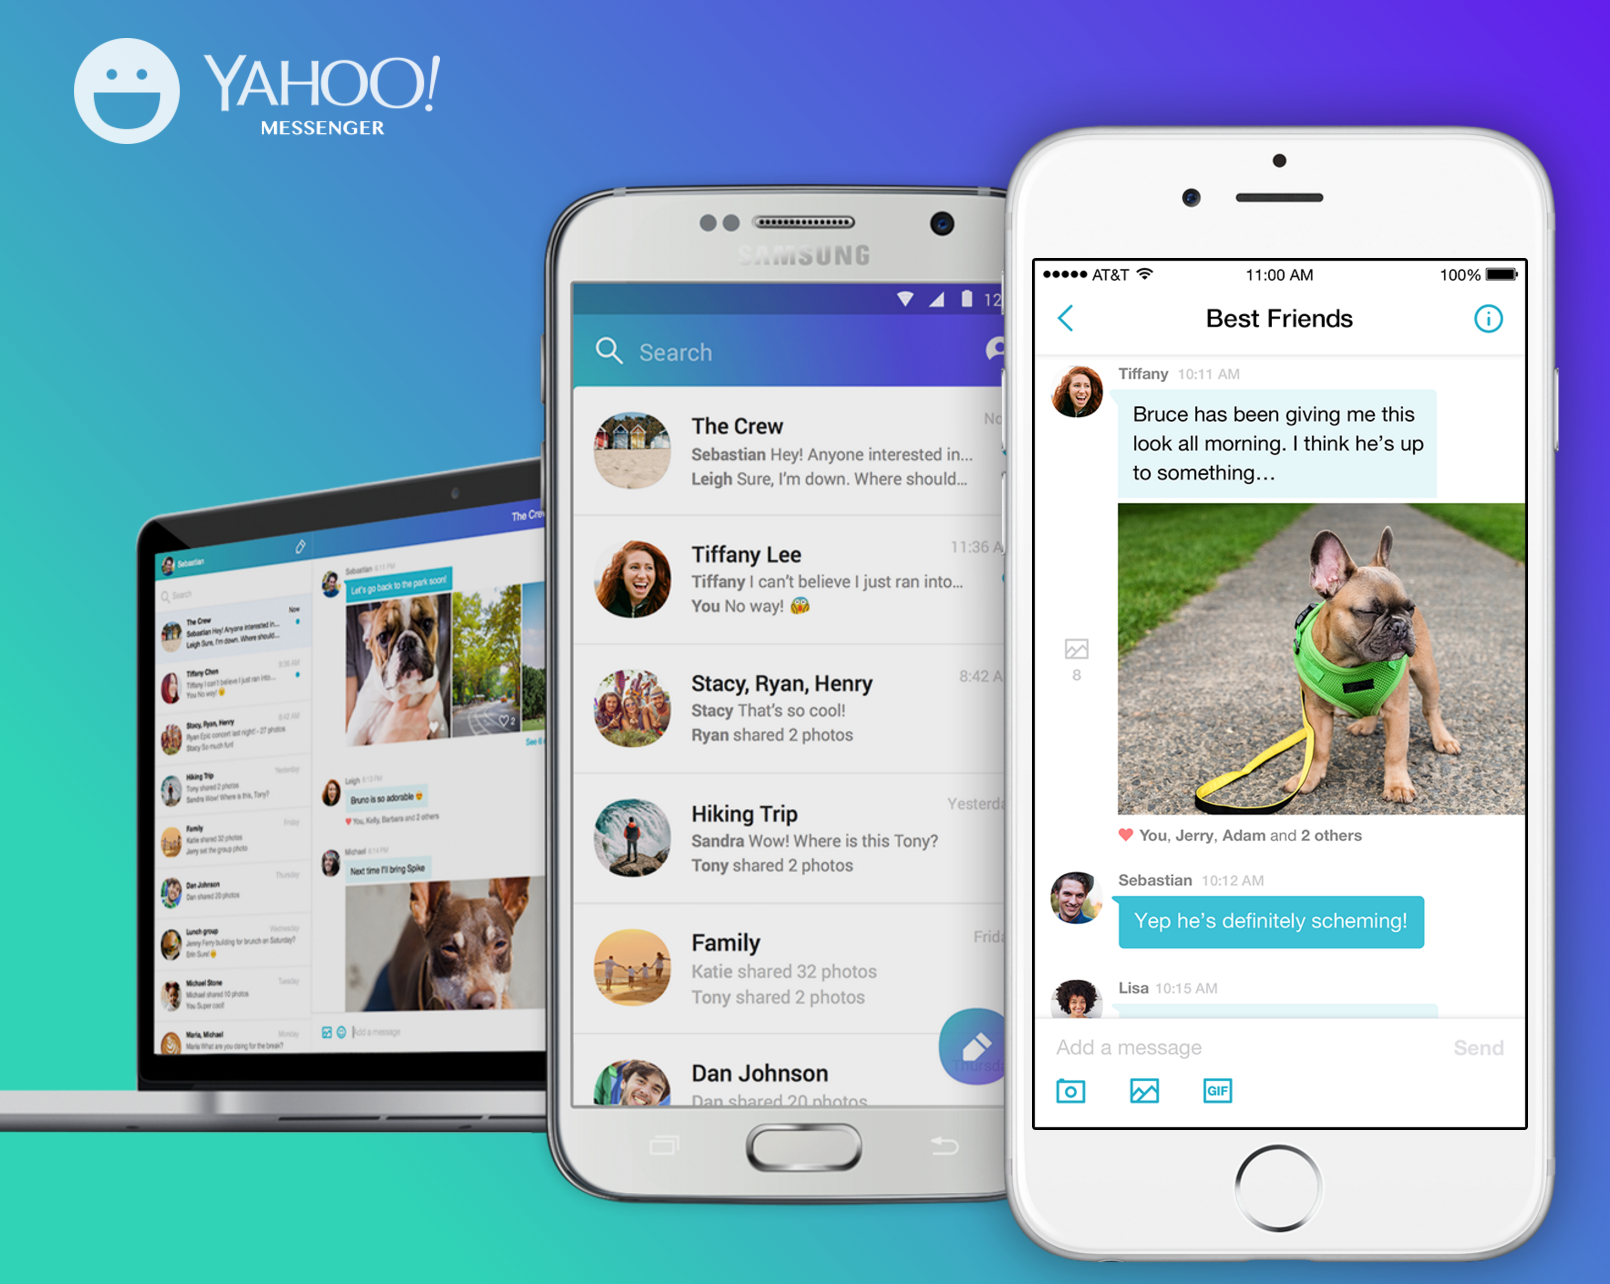 Yahoo Messenger is shutting down on July 17 redirects users to group messaging app Squirrel		 		 	Ingrid Lunden         @	       	7 hours